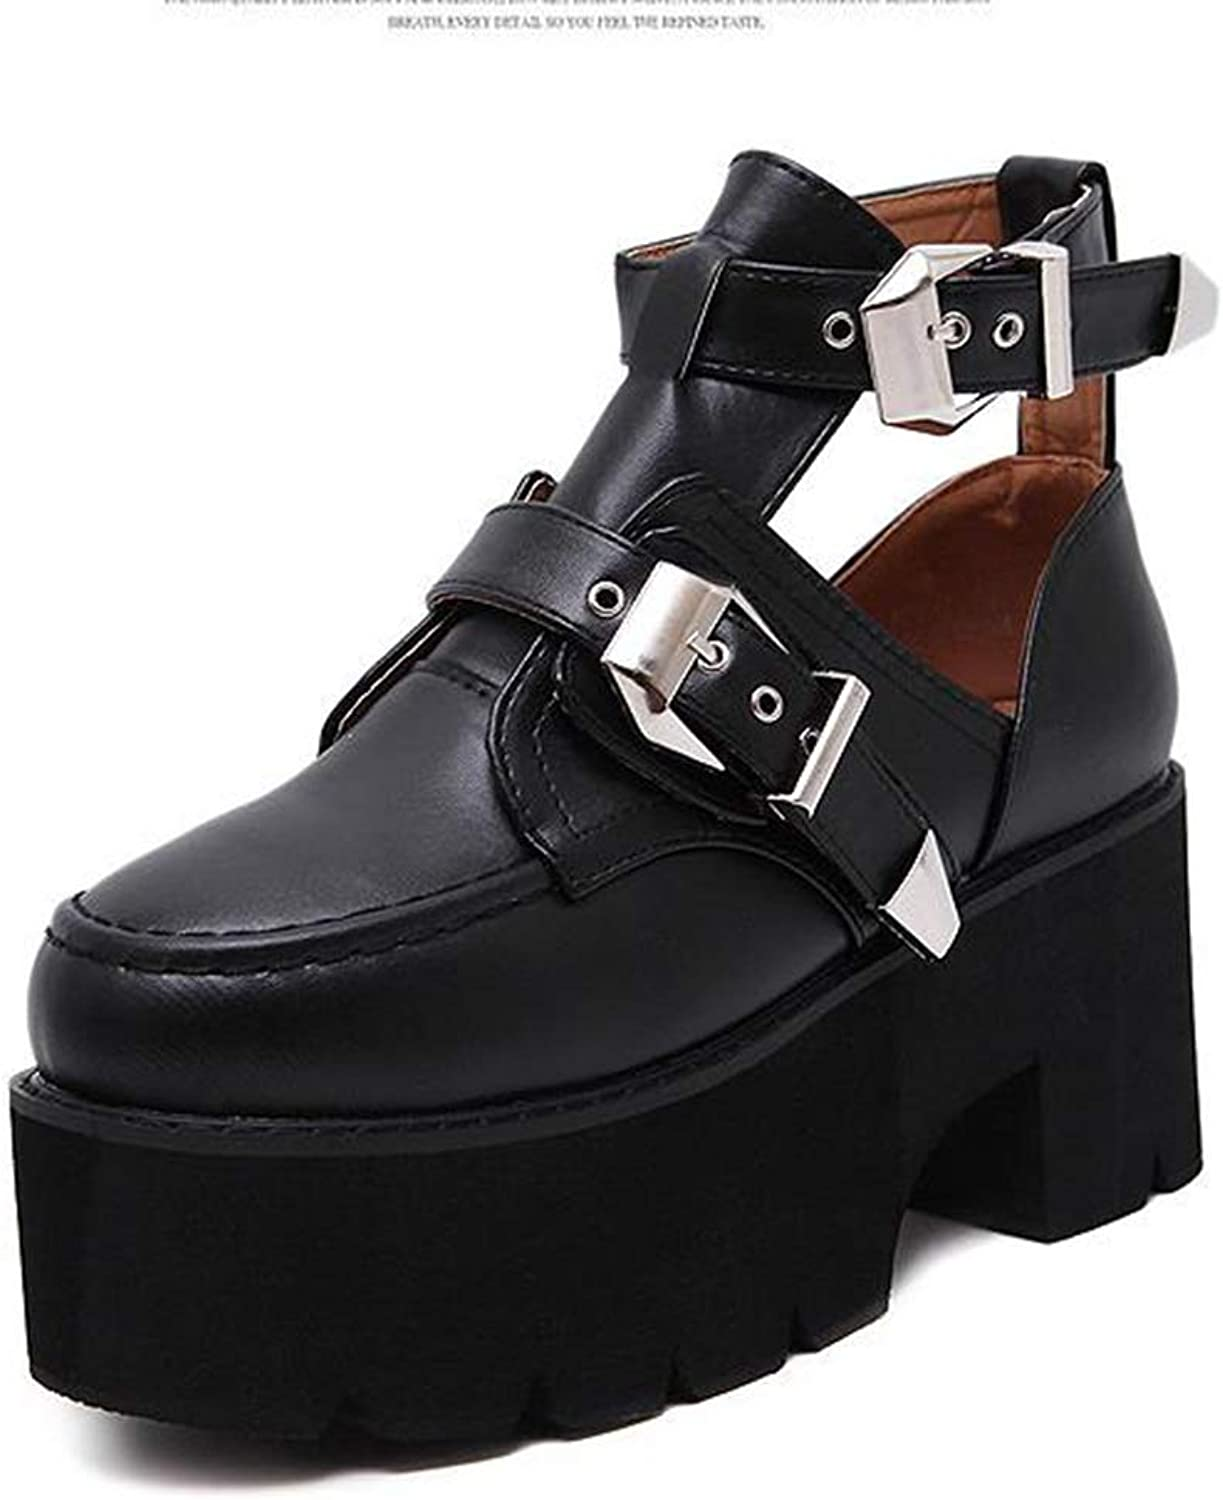 T-JULY Spring Autumn Ankle Boots for Women Fashion Silver Buckle Cut Out Low Heel Gladiator Motorcycle shoes